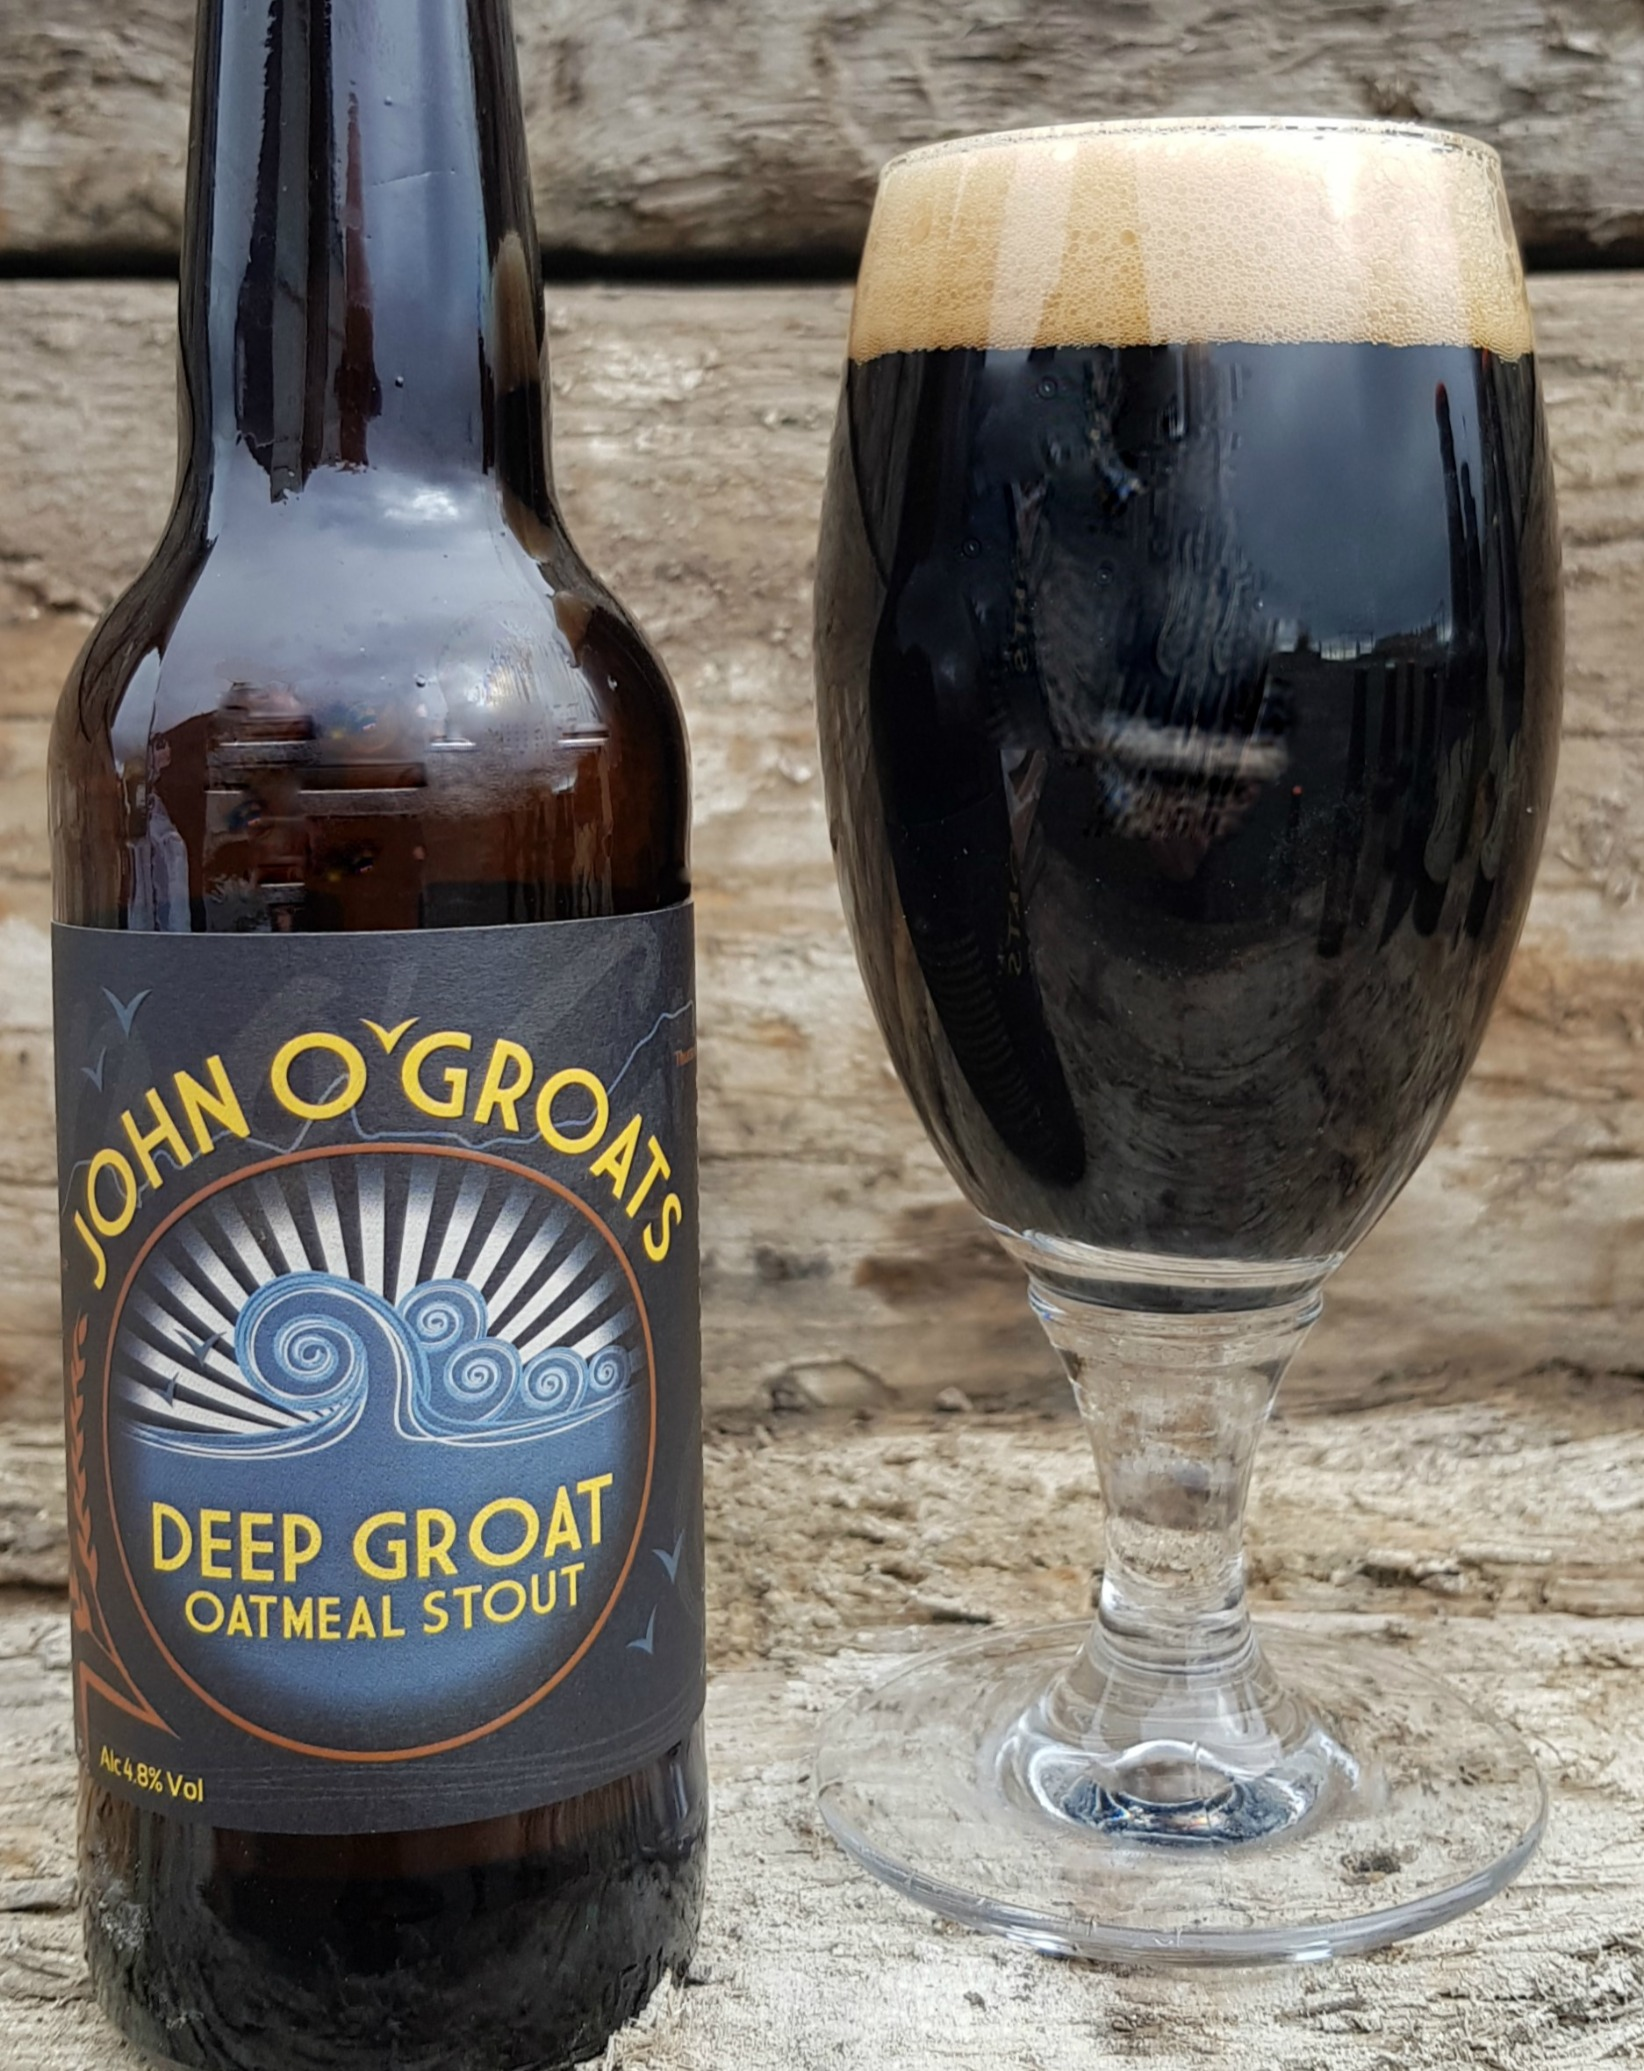 Deep%20Groat%20bottle%20and%20glass_edit